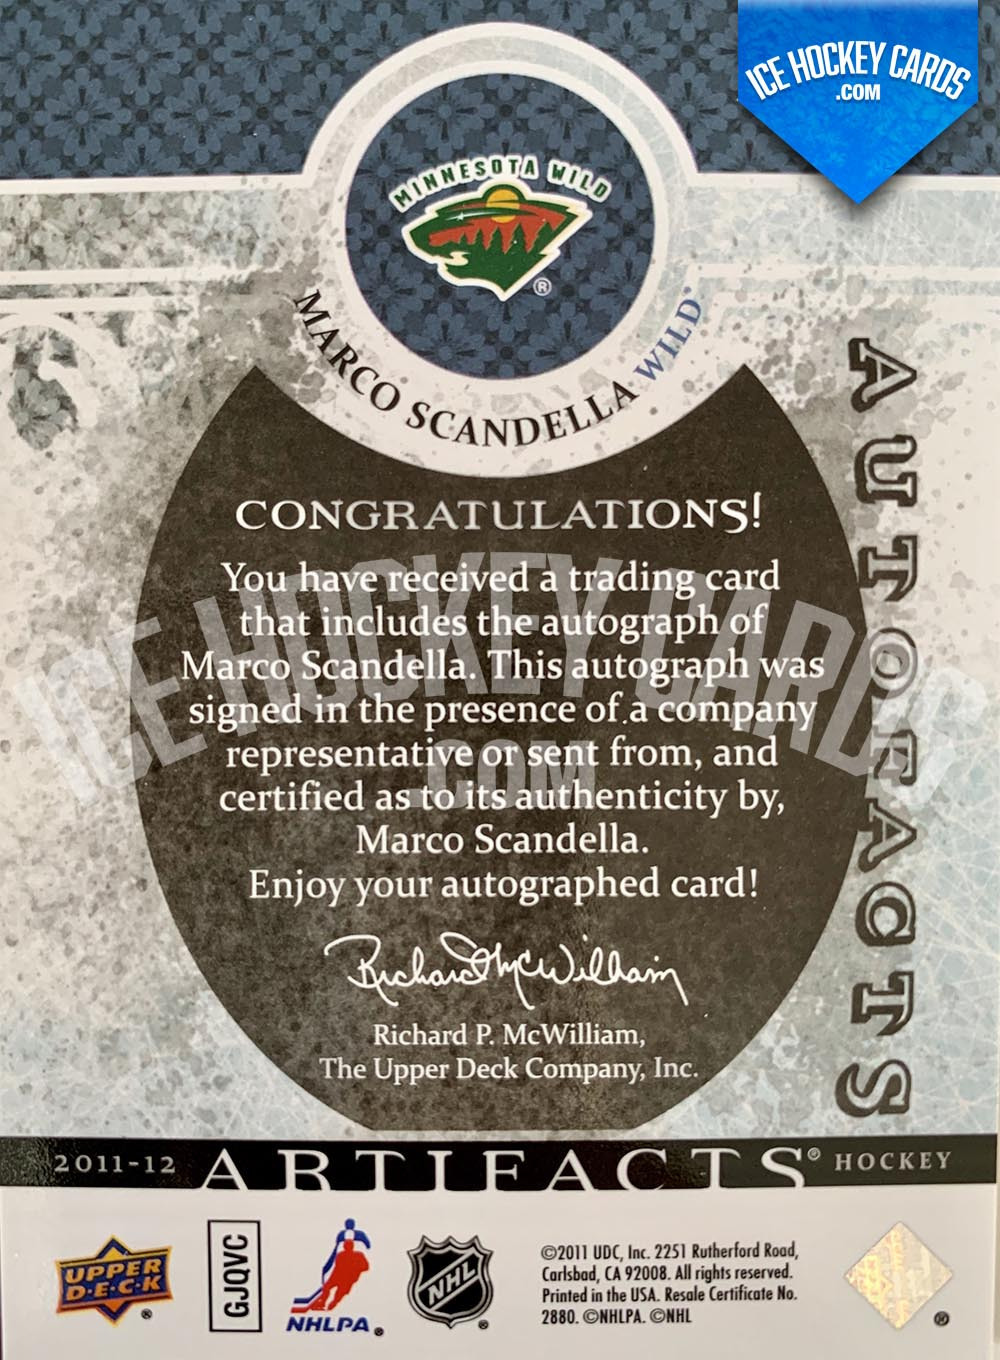 Upper Deck - Artifacts 2011-12 - Marco Scandella Autofacts Autograph back